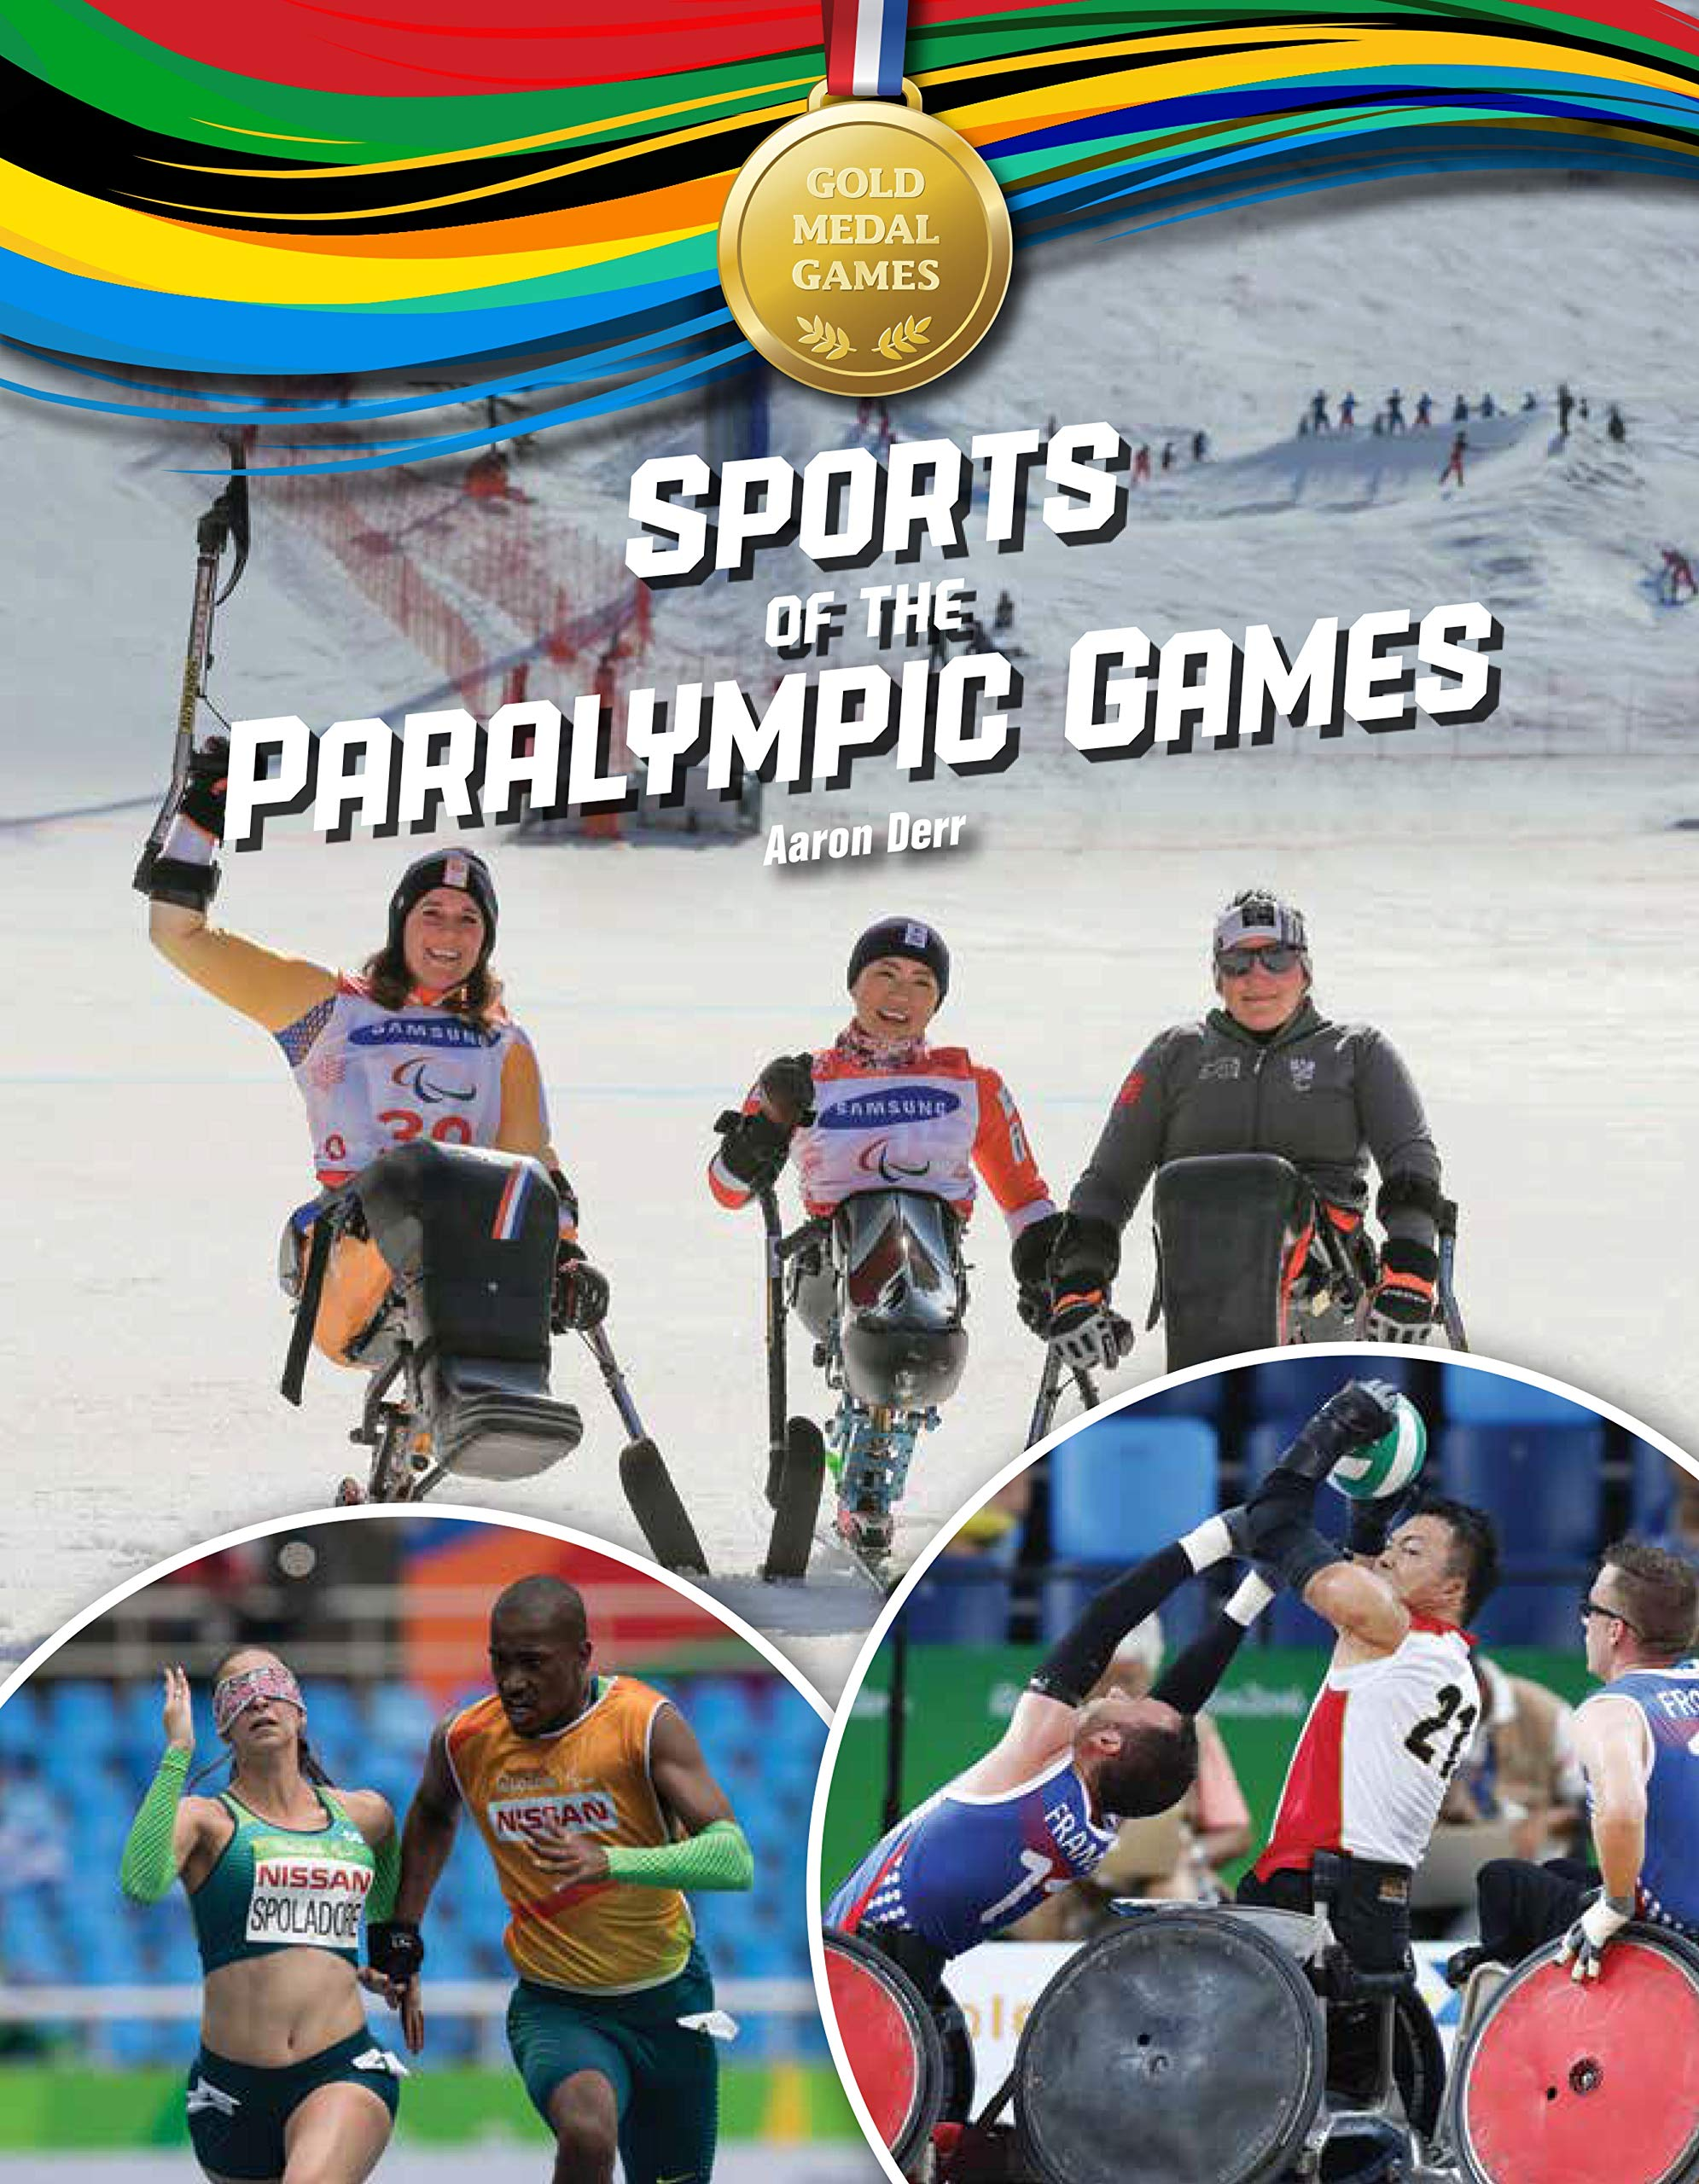 Games With Gold January 2020.Sports Of The Paralympic Games Gold Medal Games Aaron